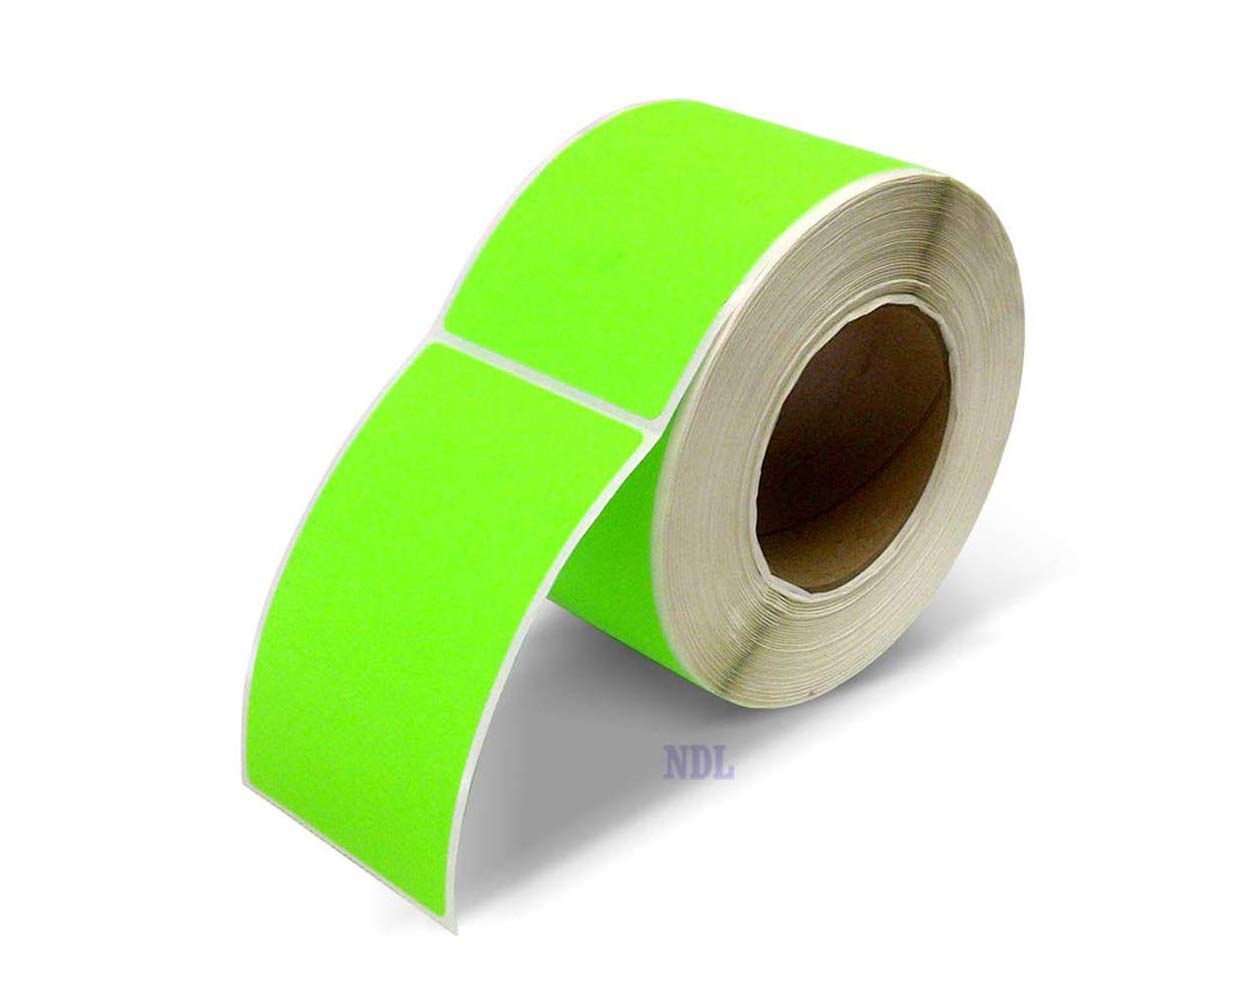 Next Day Labels, 3 X 5 Rectangle Inventory Color Coding Labels, 500 Per Roll (Fluorescent Green)